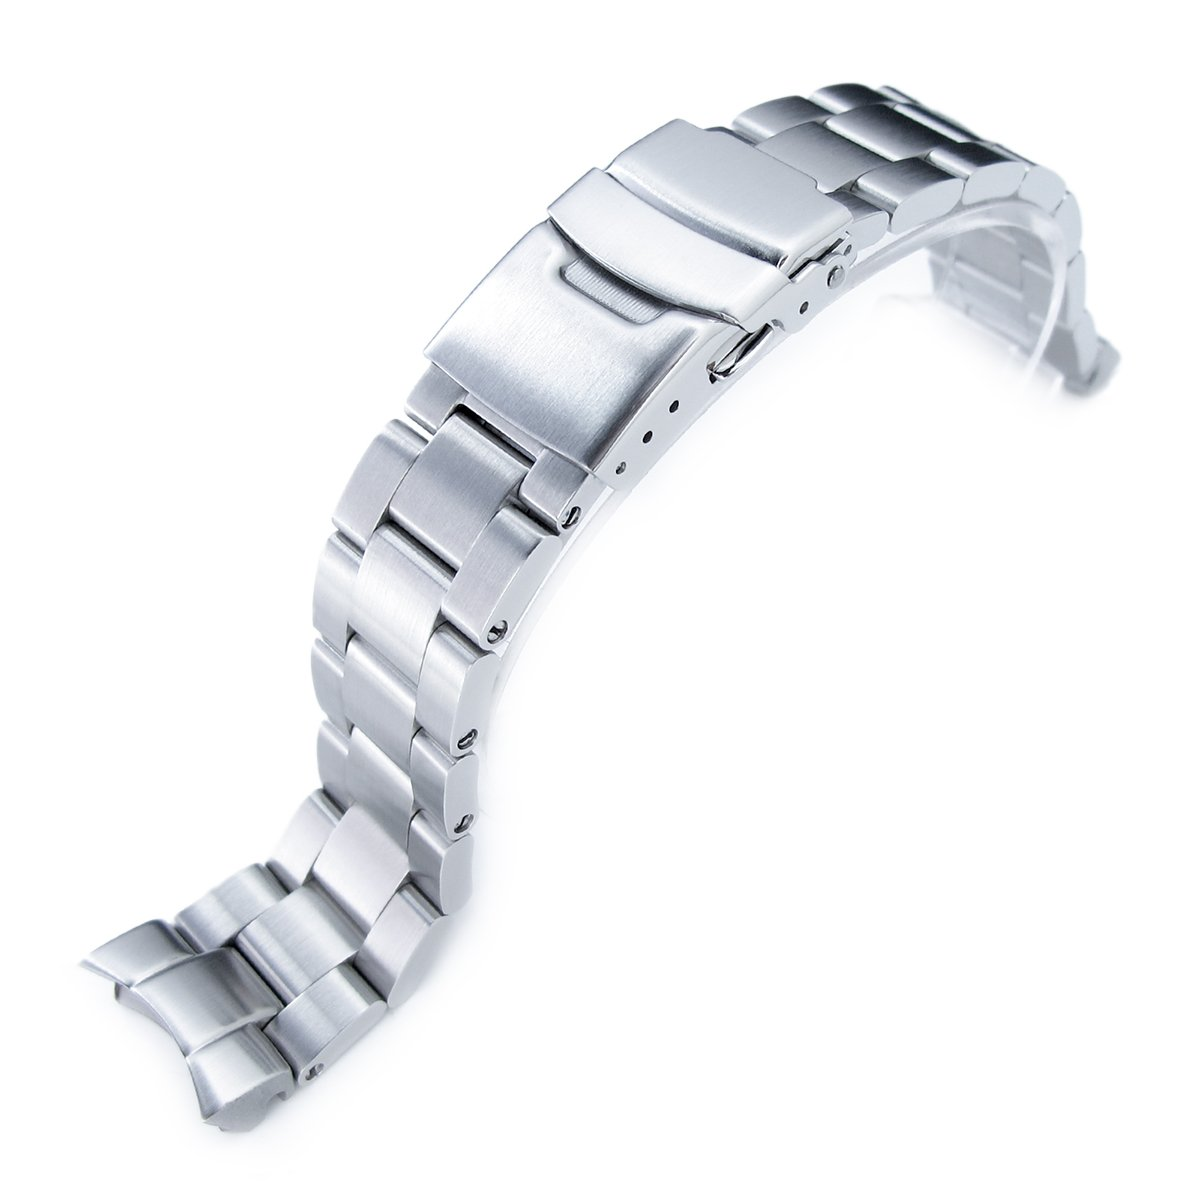 20mm Super Oyster Watch Bracelet Replacement for Seiko SKX013, Brushed 316L SS by MiLTAT